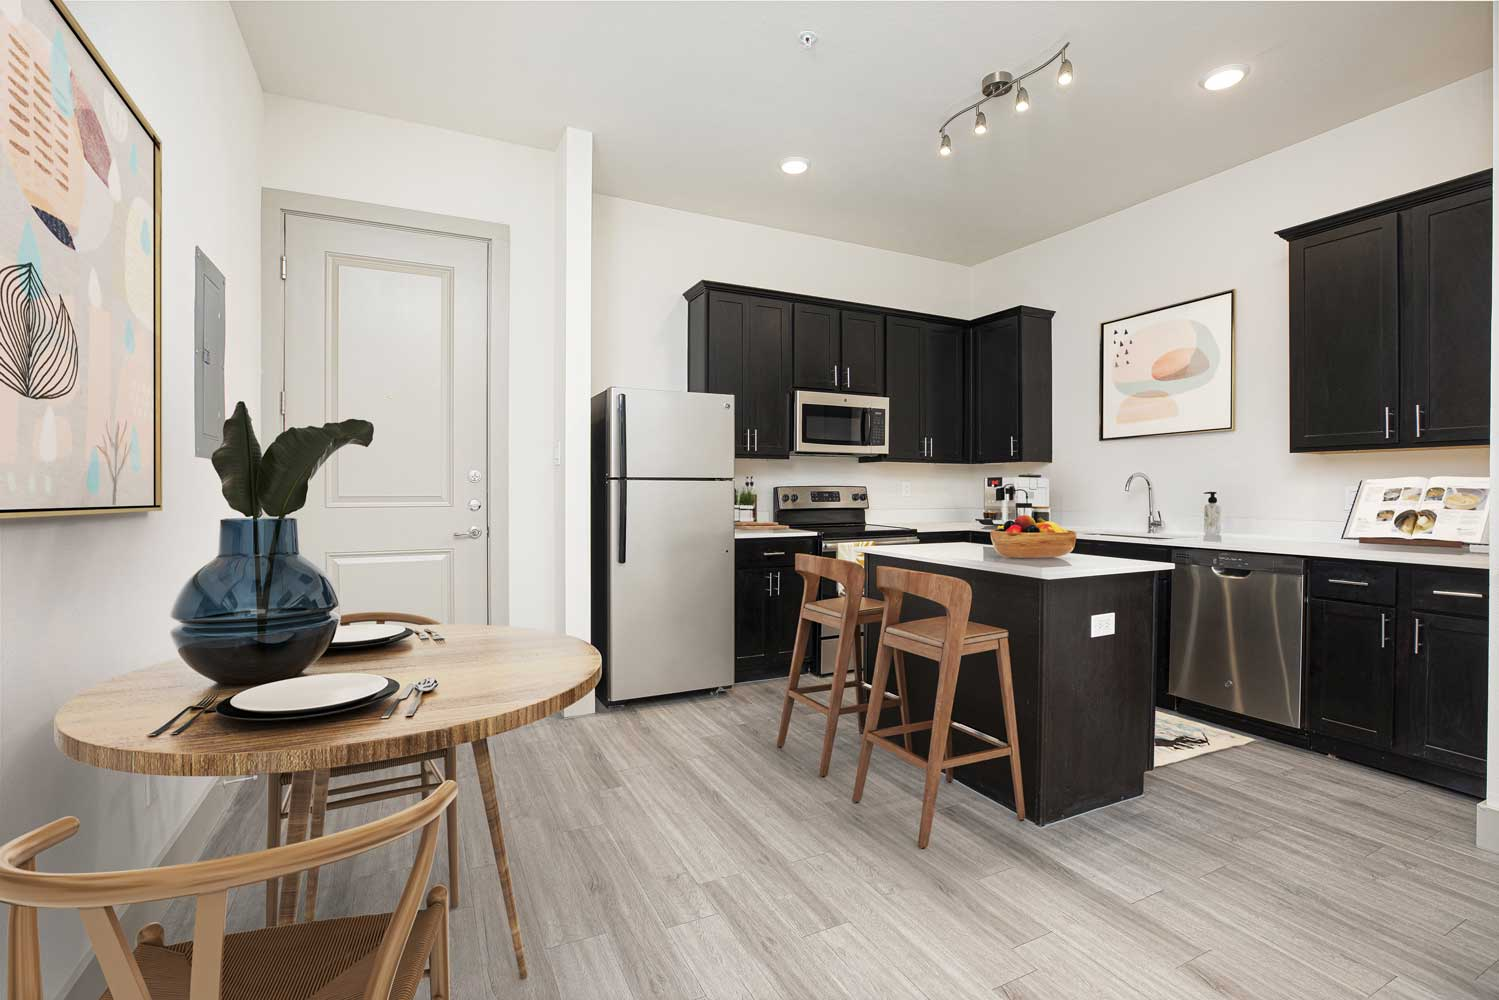 Apartments for Rent at Mt Vernon Lofts Apartments in Houston, TX